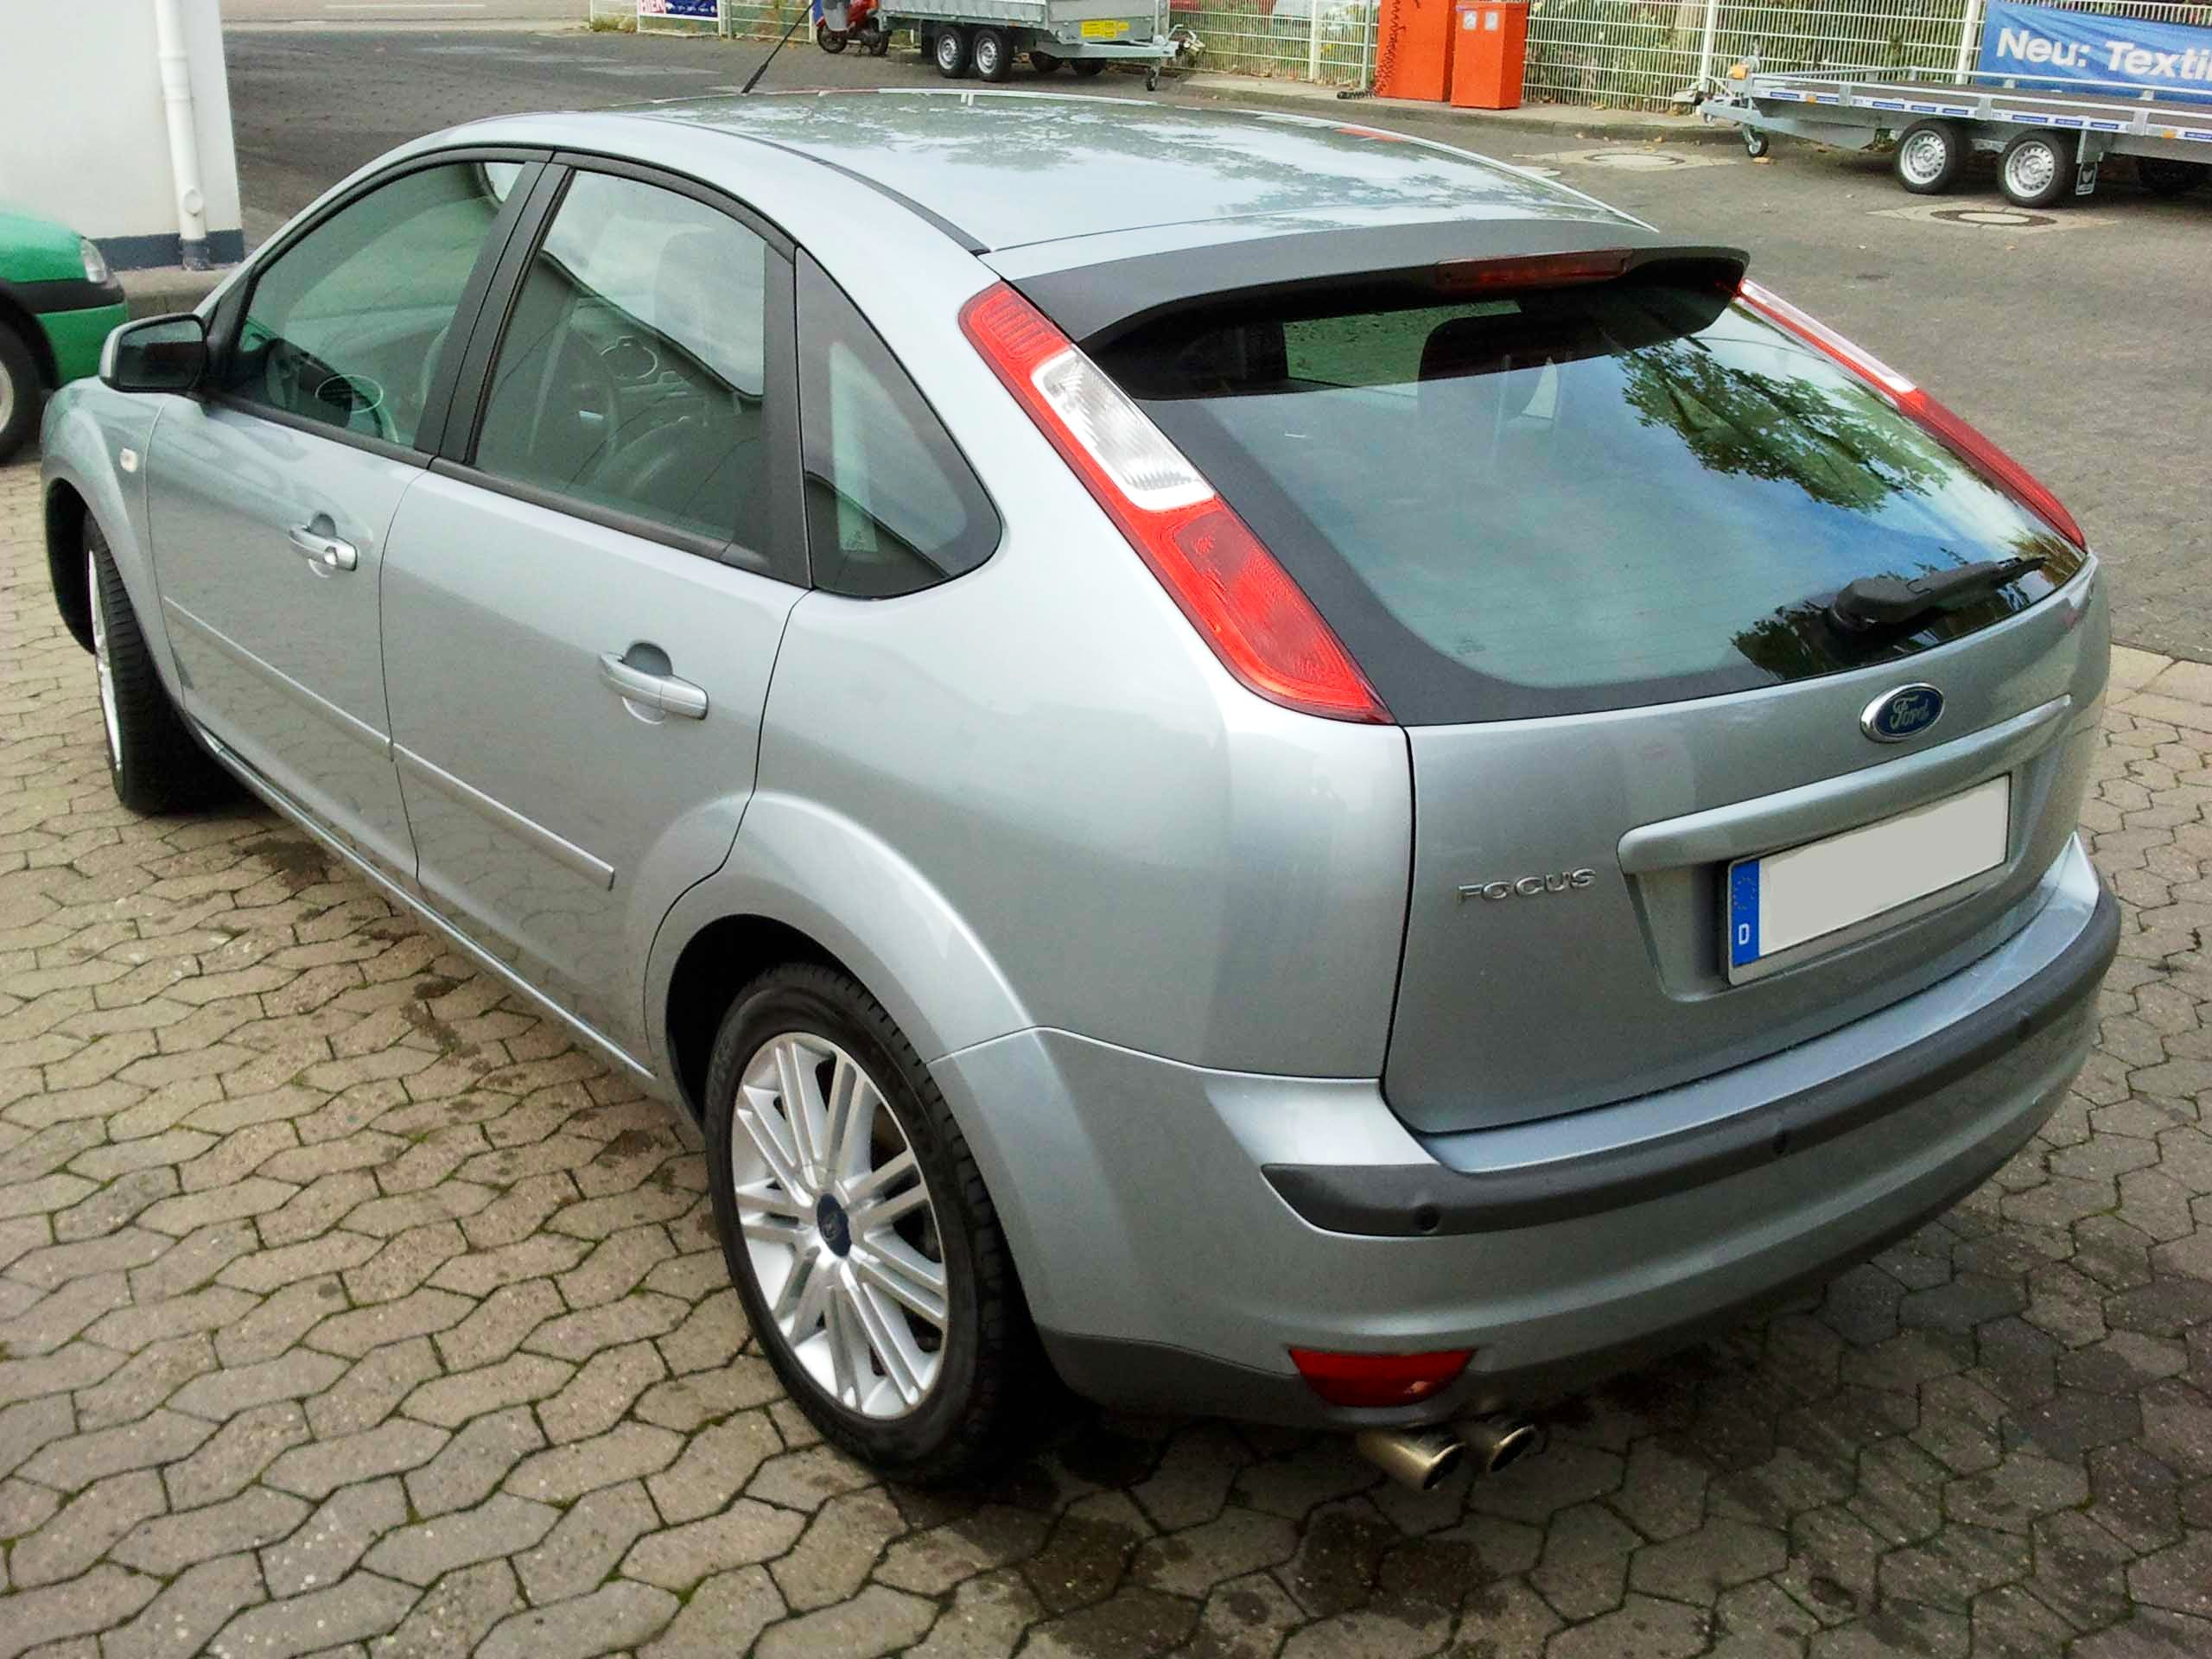 Ford Focus II Titanium mit CD-Player